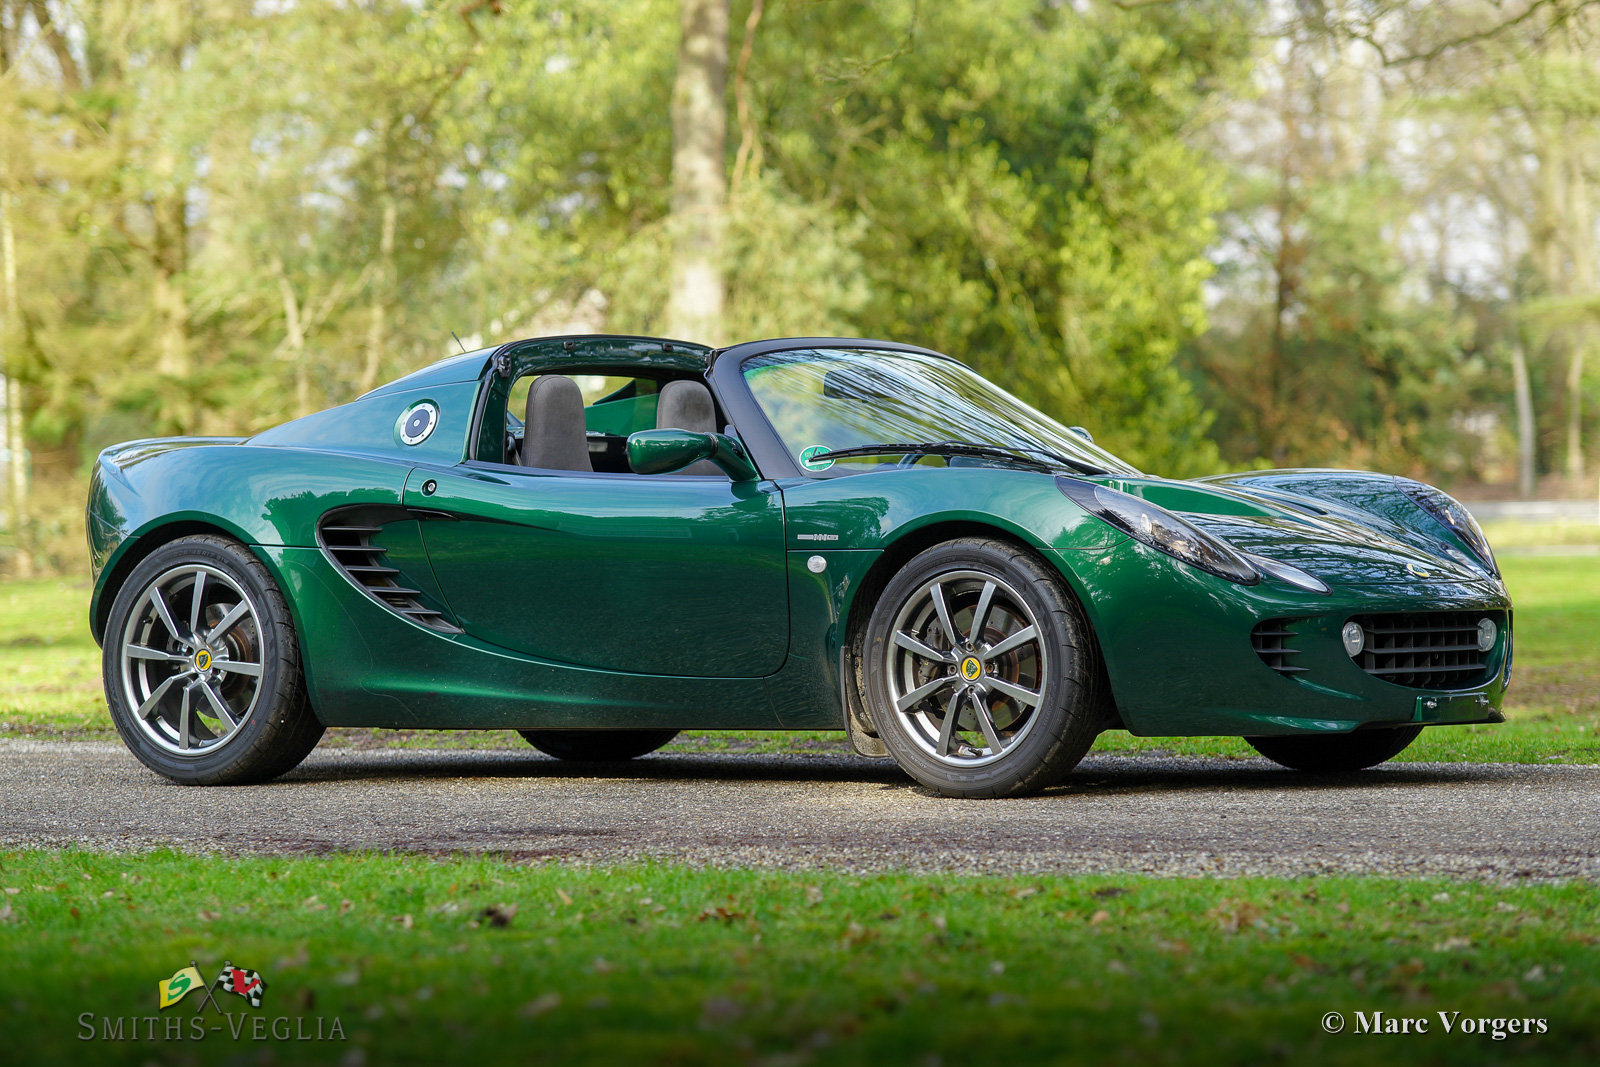 2003 Beautiful Lotus Elise 111S in a beautiful condition For Sale (picture 1 of 6)